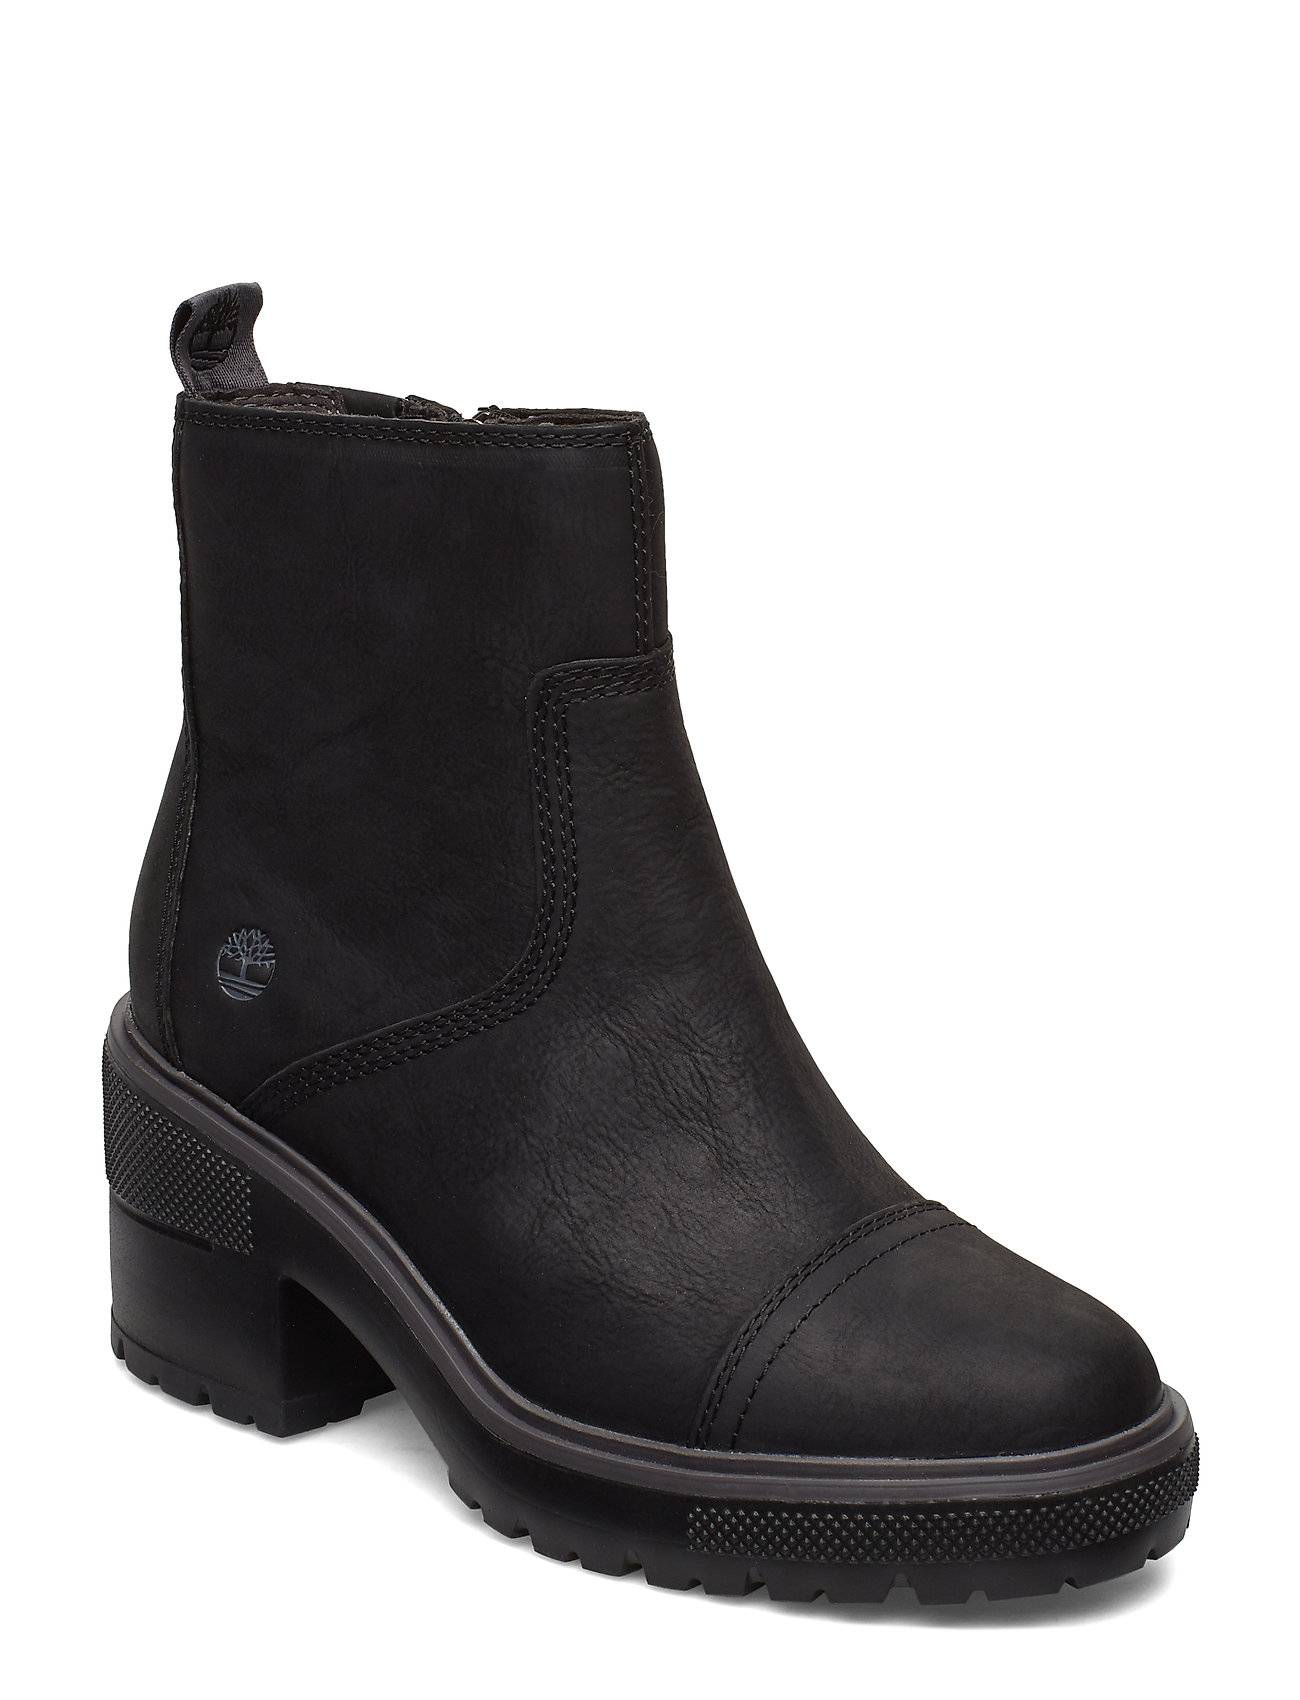 Timberland Silver Blossom Side Zip Shoes Boots Ankle Boots Ankle Boots With Heel Musta